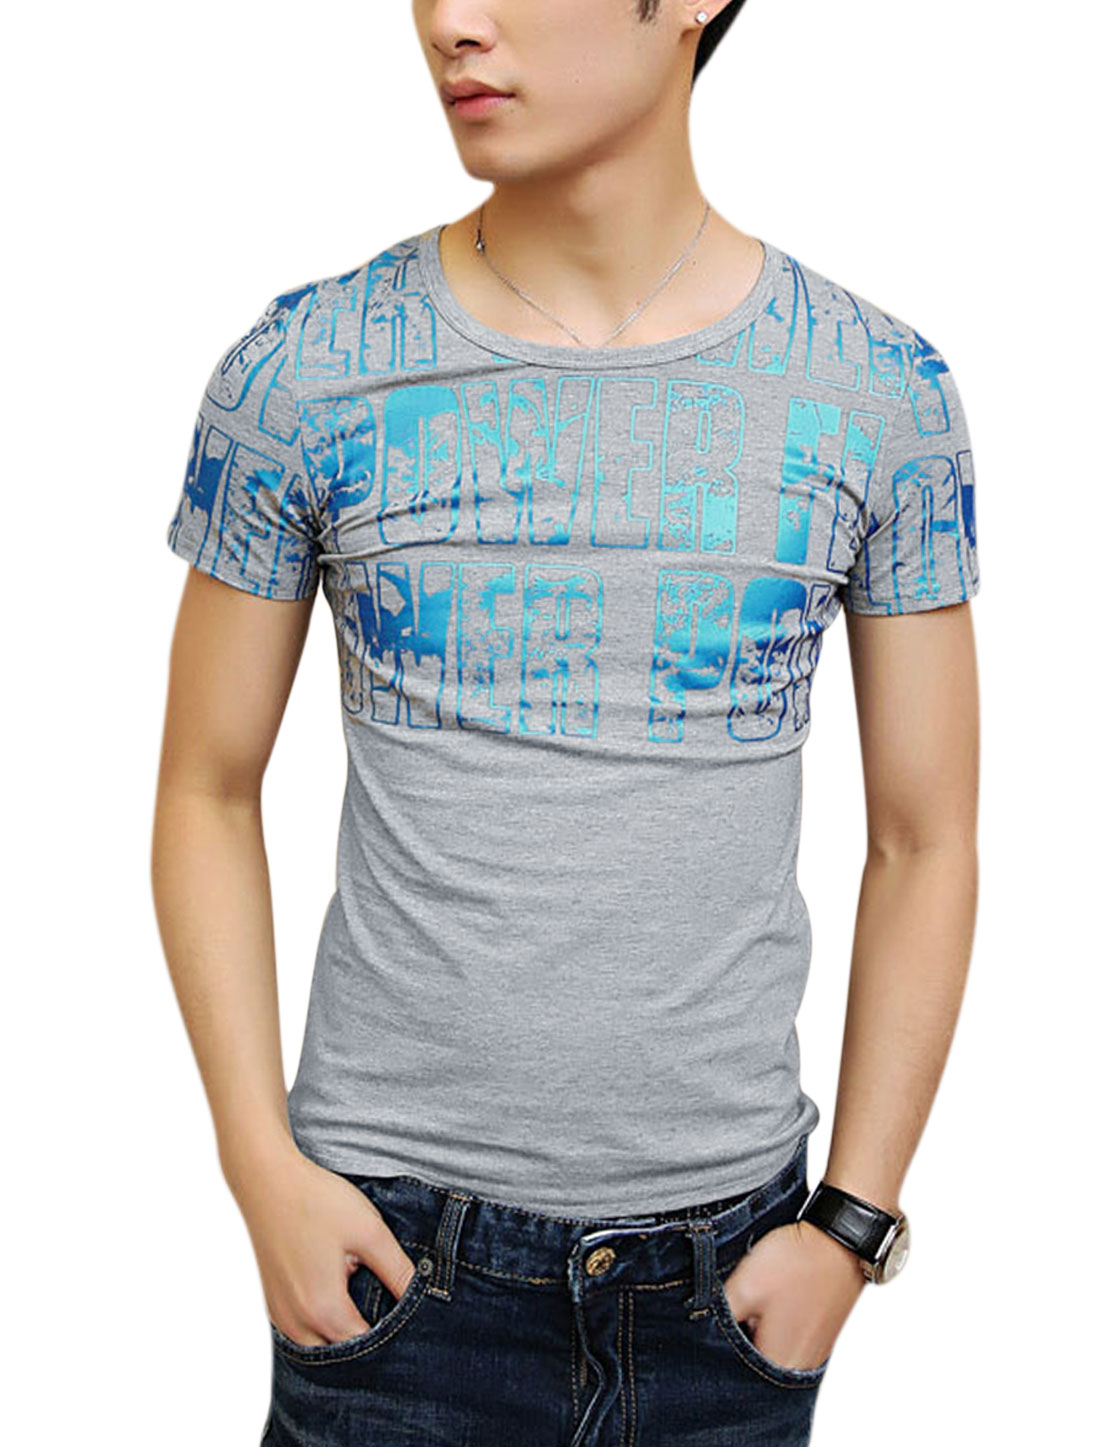 Round Neck Short Sleeve Letters Prints Basic Tee for Men Light Gray S